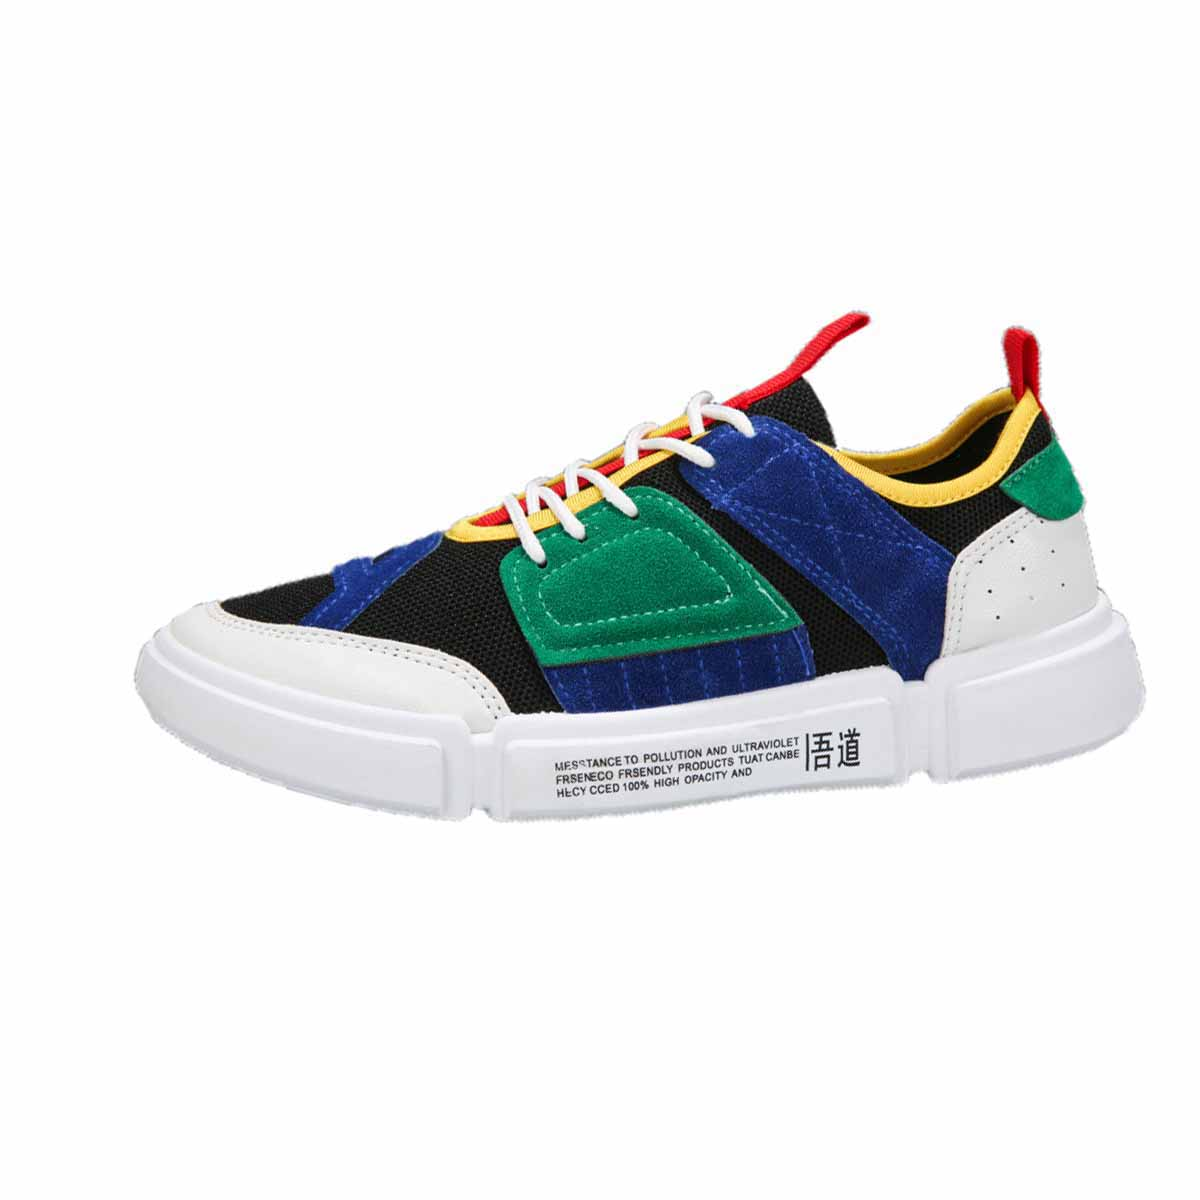 Men s Low Top Vulcanize Shoes Goku Flat Colorful Punk Sneakers Male High  Quality Graffiti Street Rubber Sneakers Runway Shoes 121393980